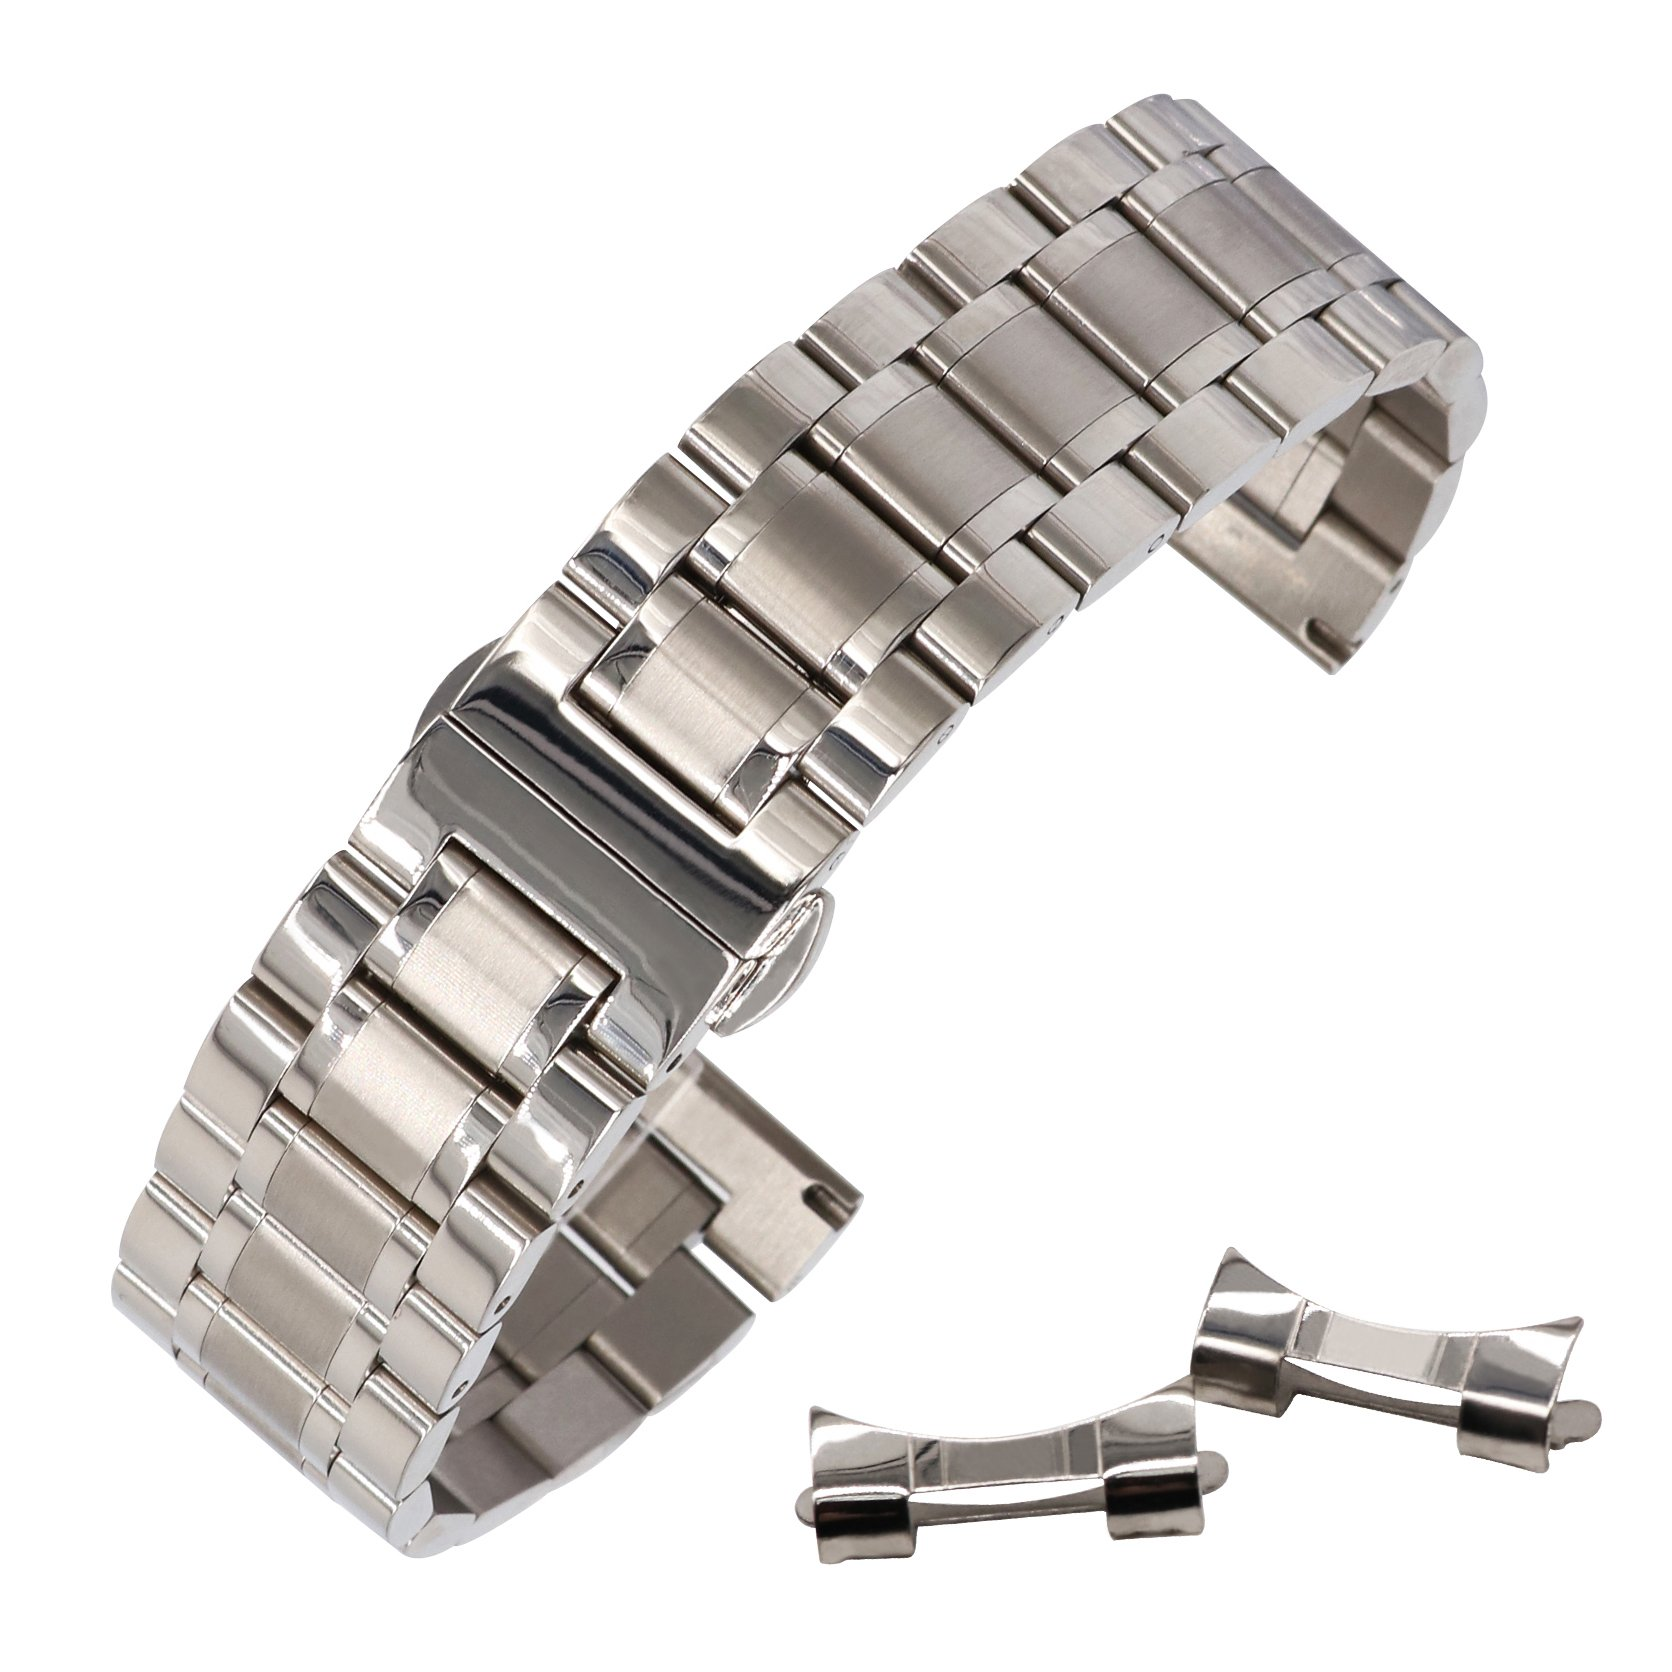 17mm Exquisite Brushed Wristband for Ladies' Watch Silver Stainless Steel Watch Strap Straight&Curved End